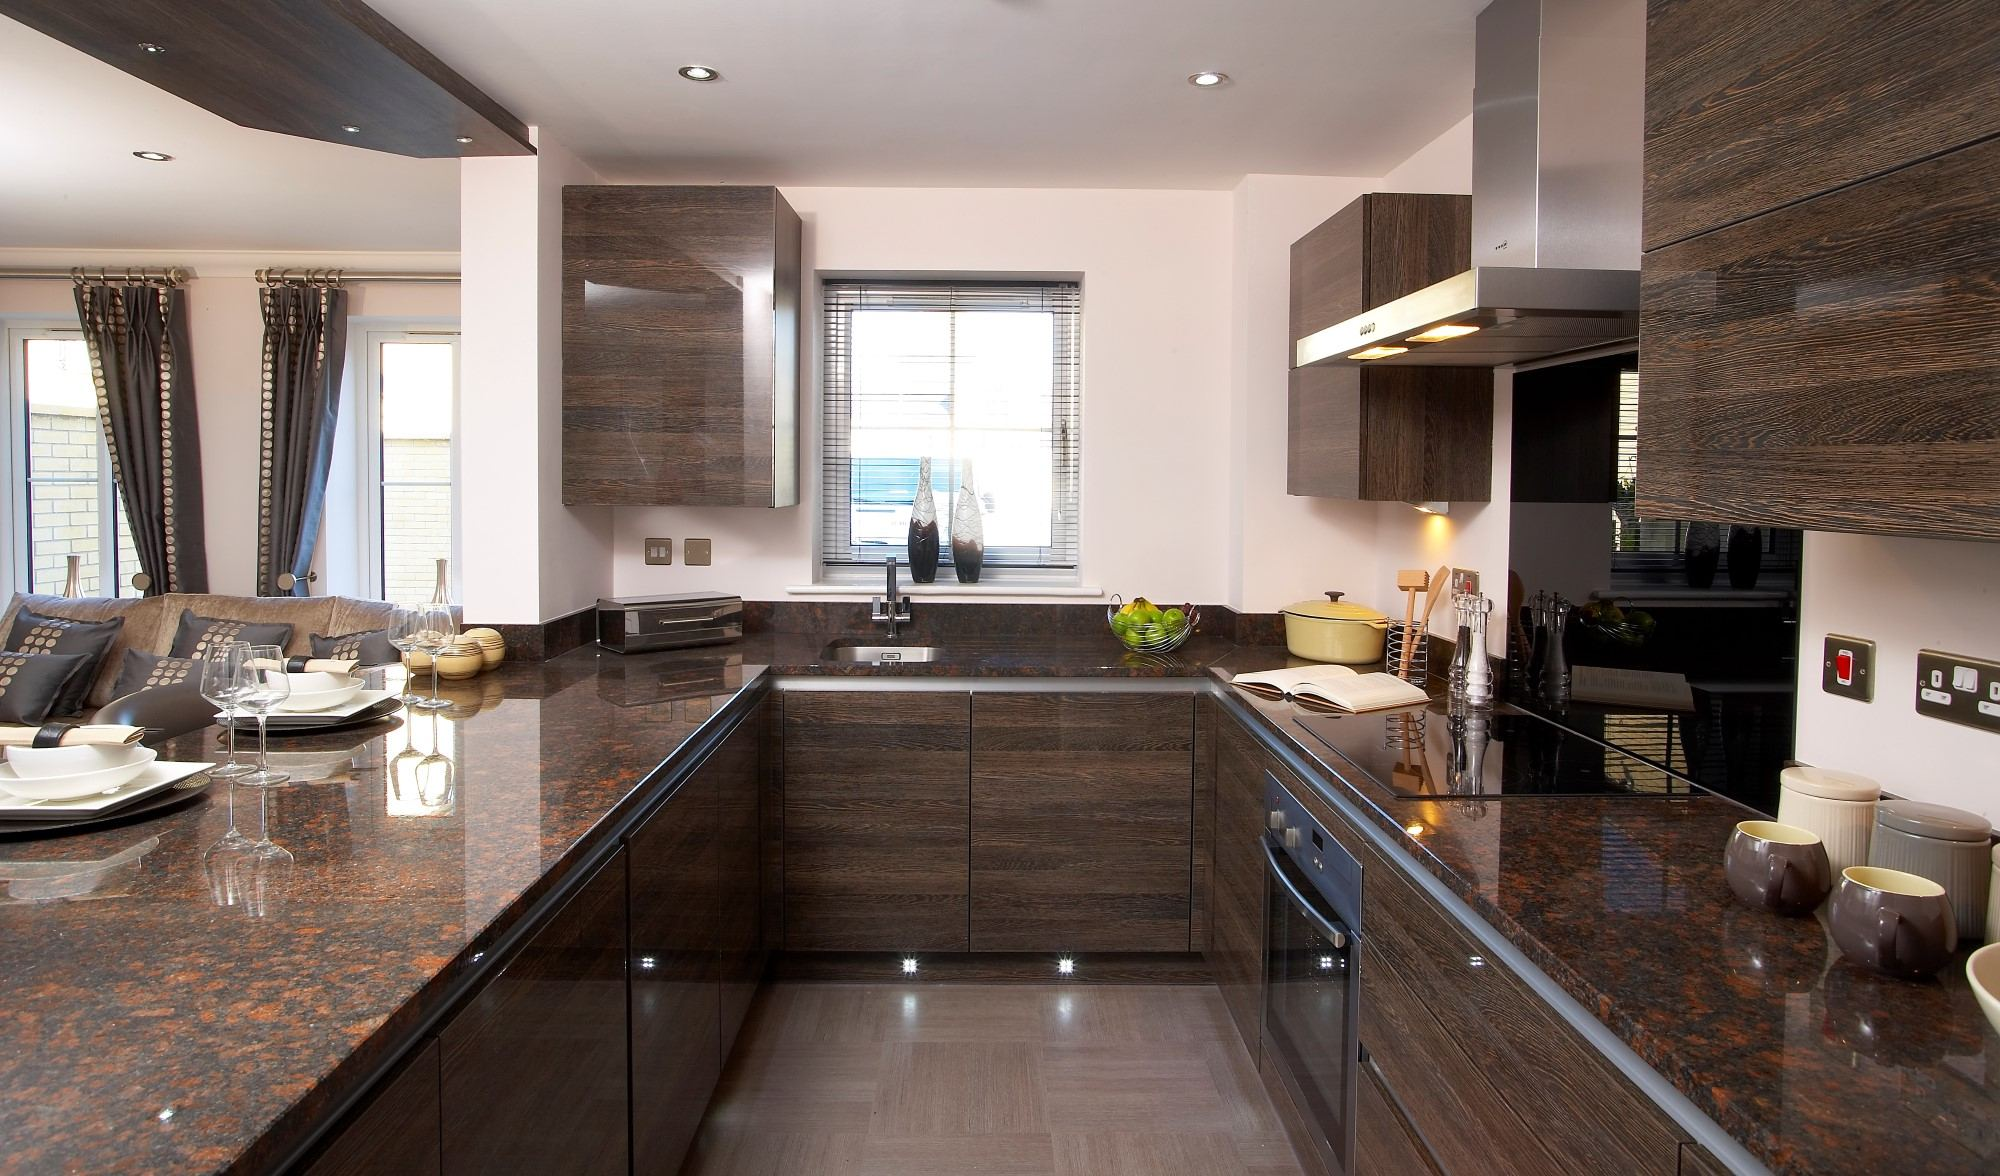 5 Things to Consider While Selecting Kitchen Sink